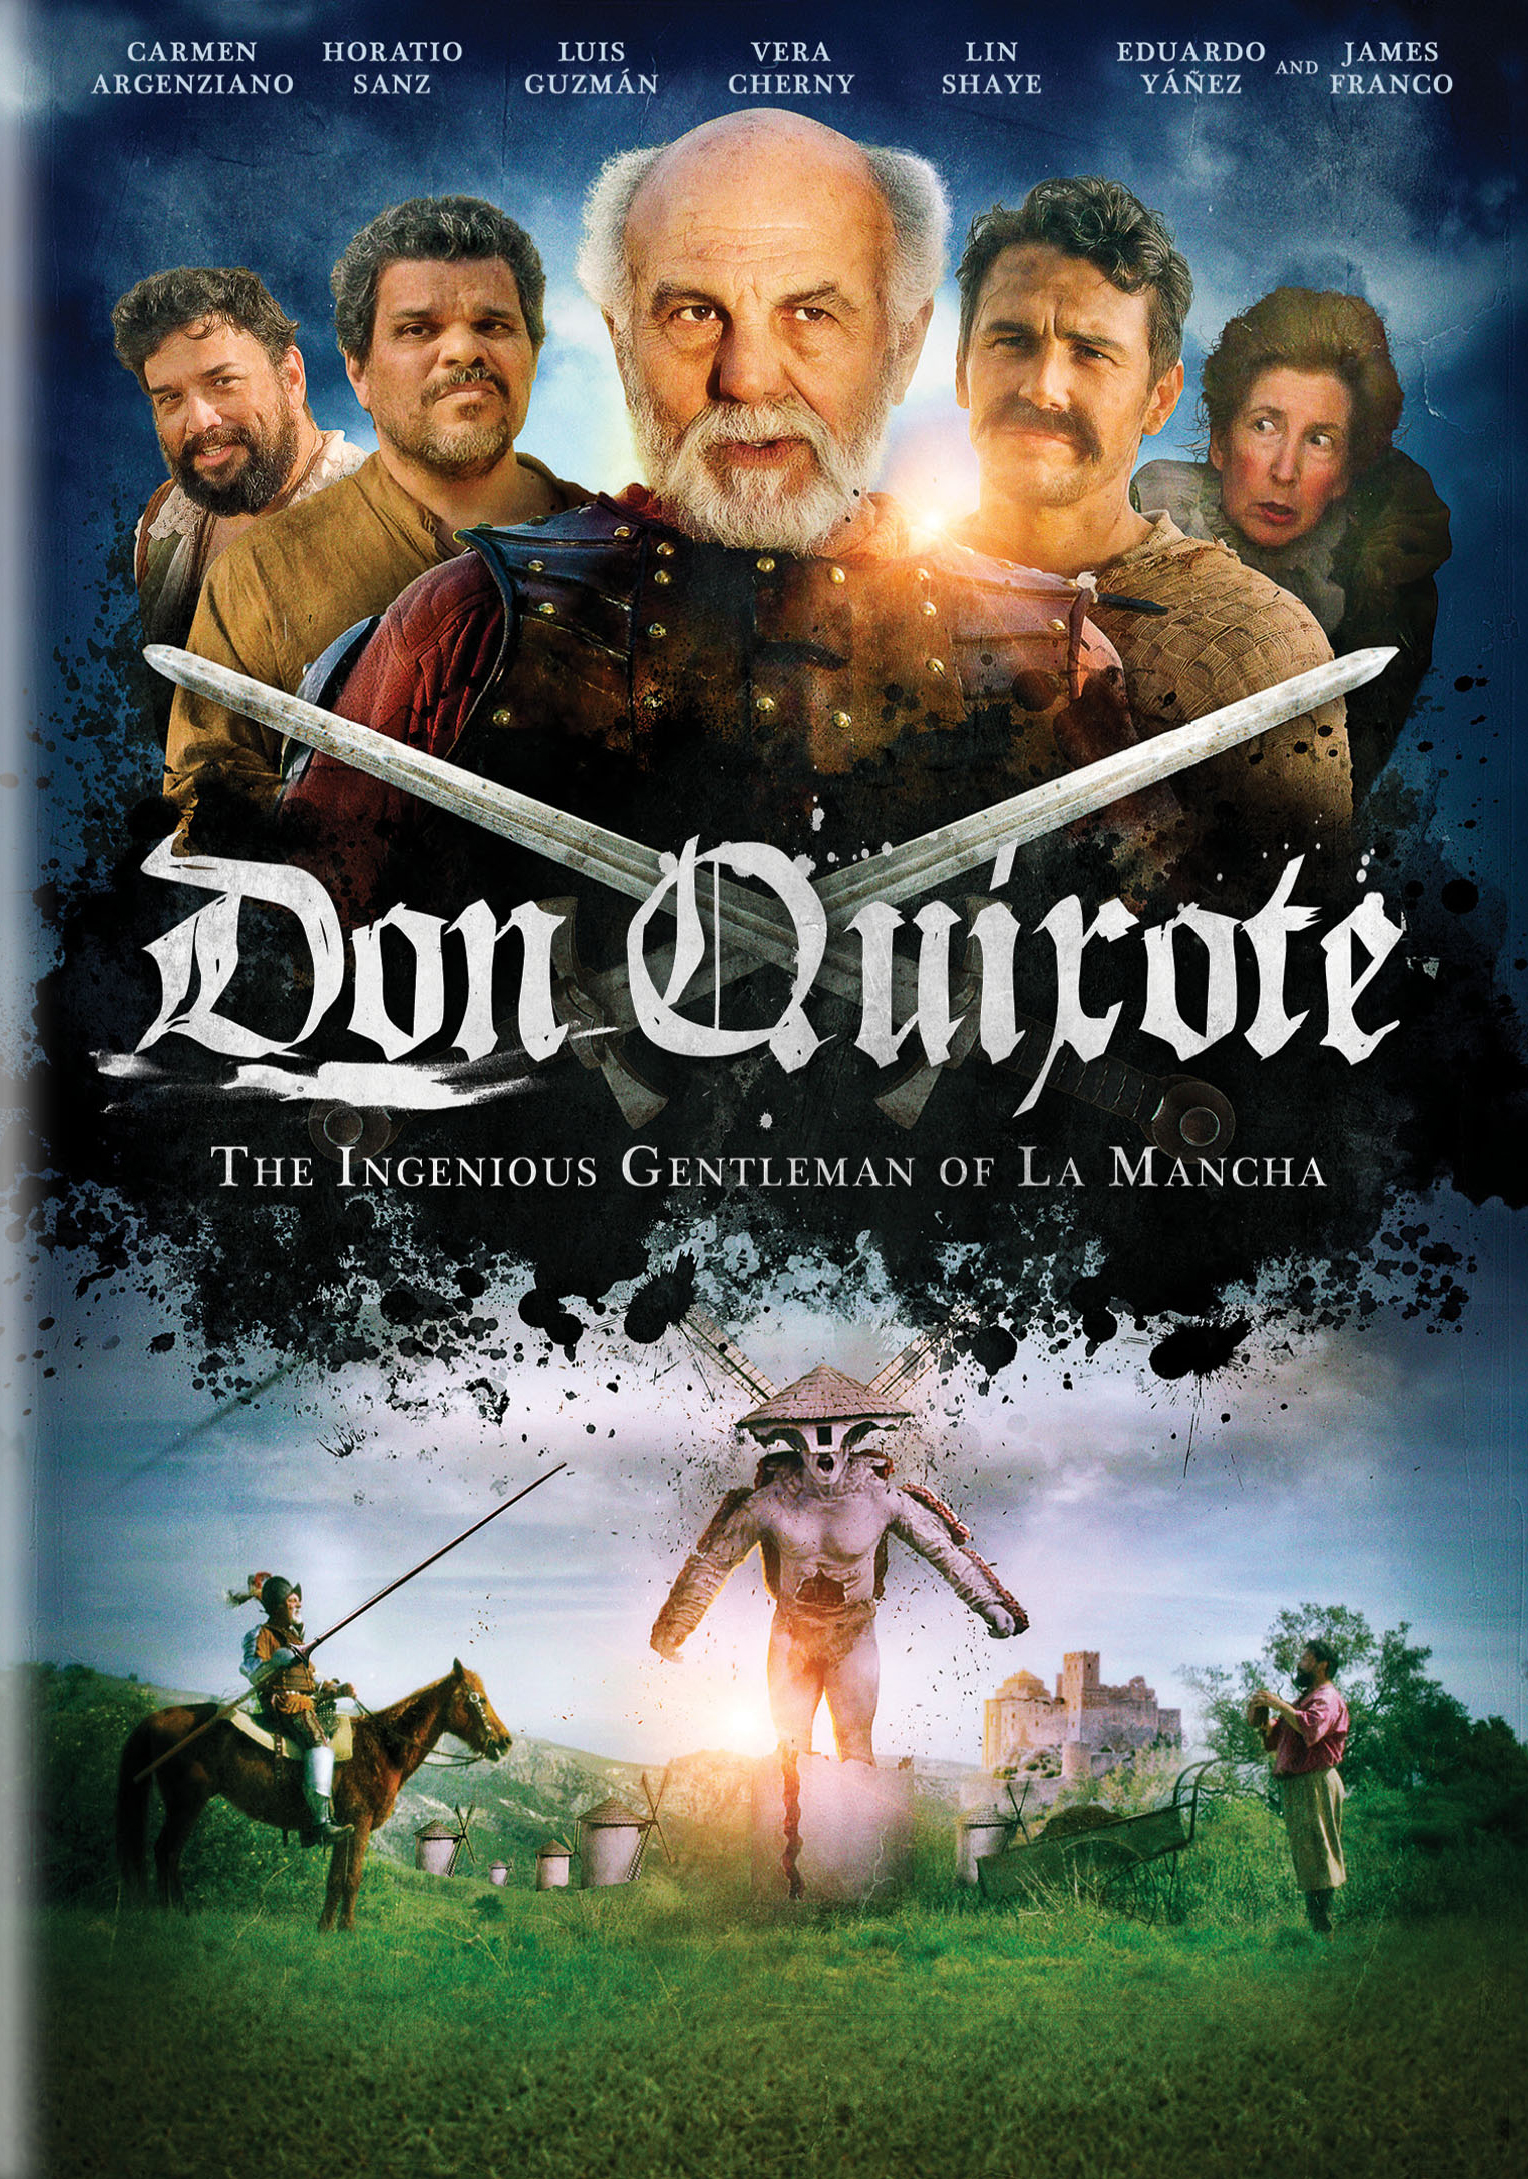 Don Quixote: The Ingenious Gentleman of La Mancha